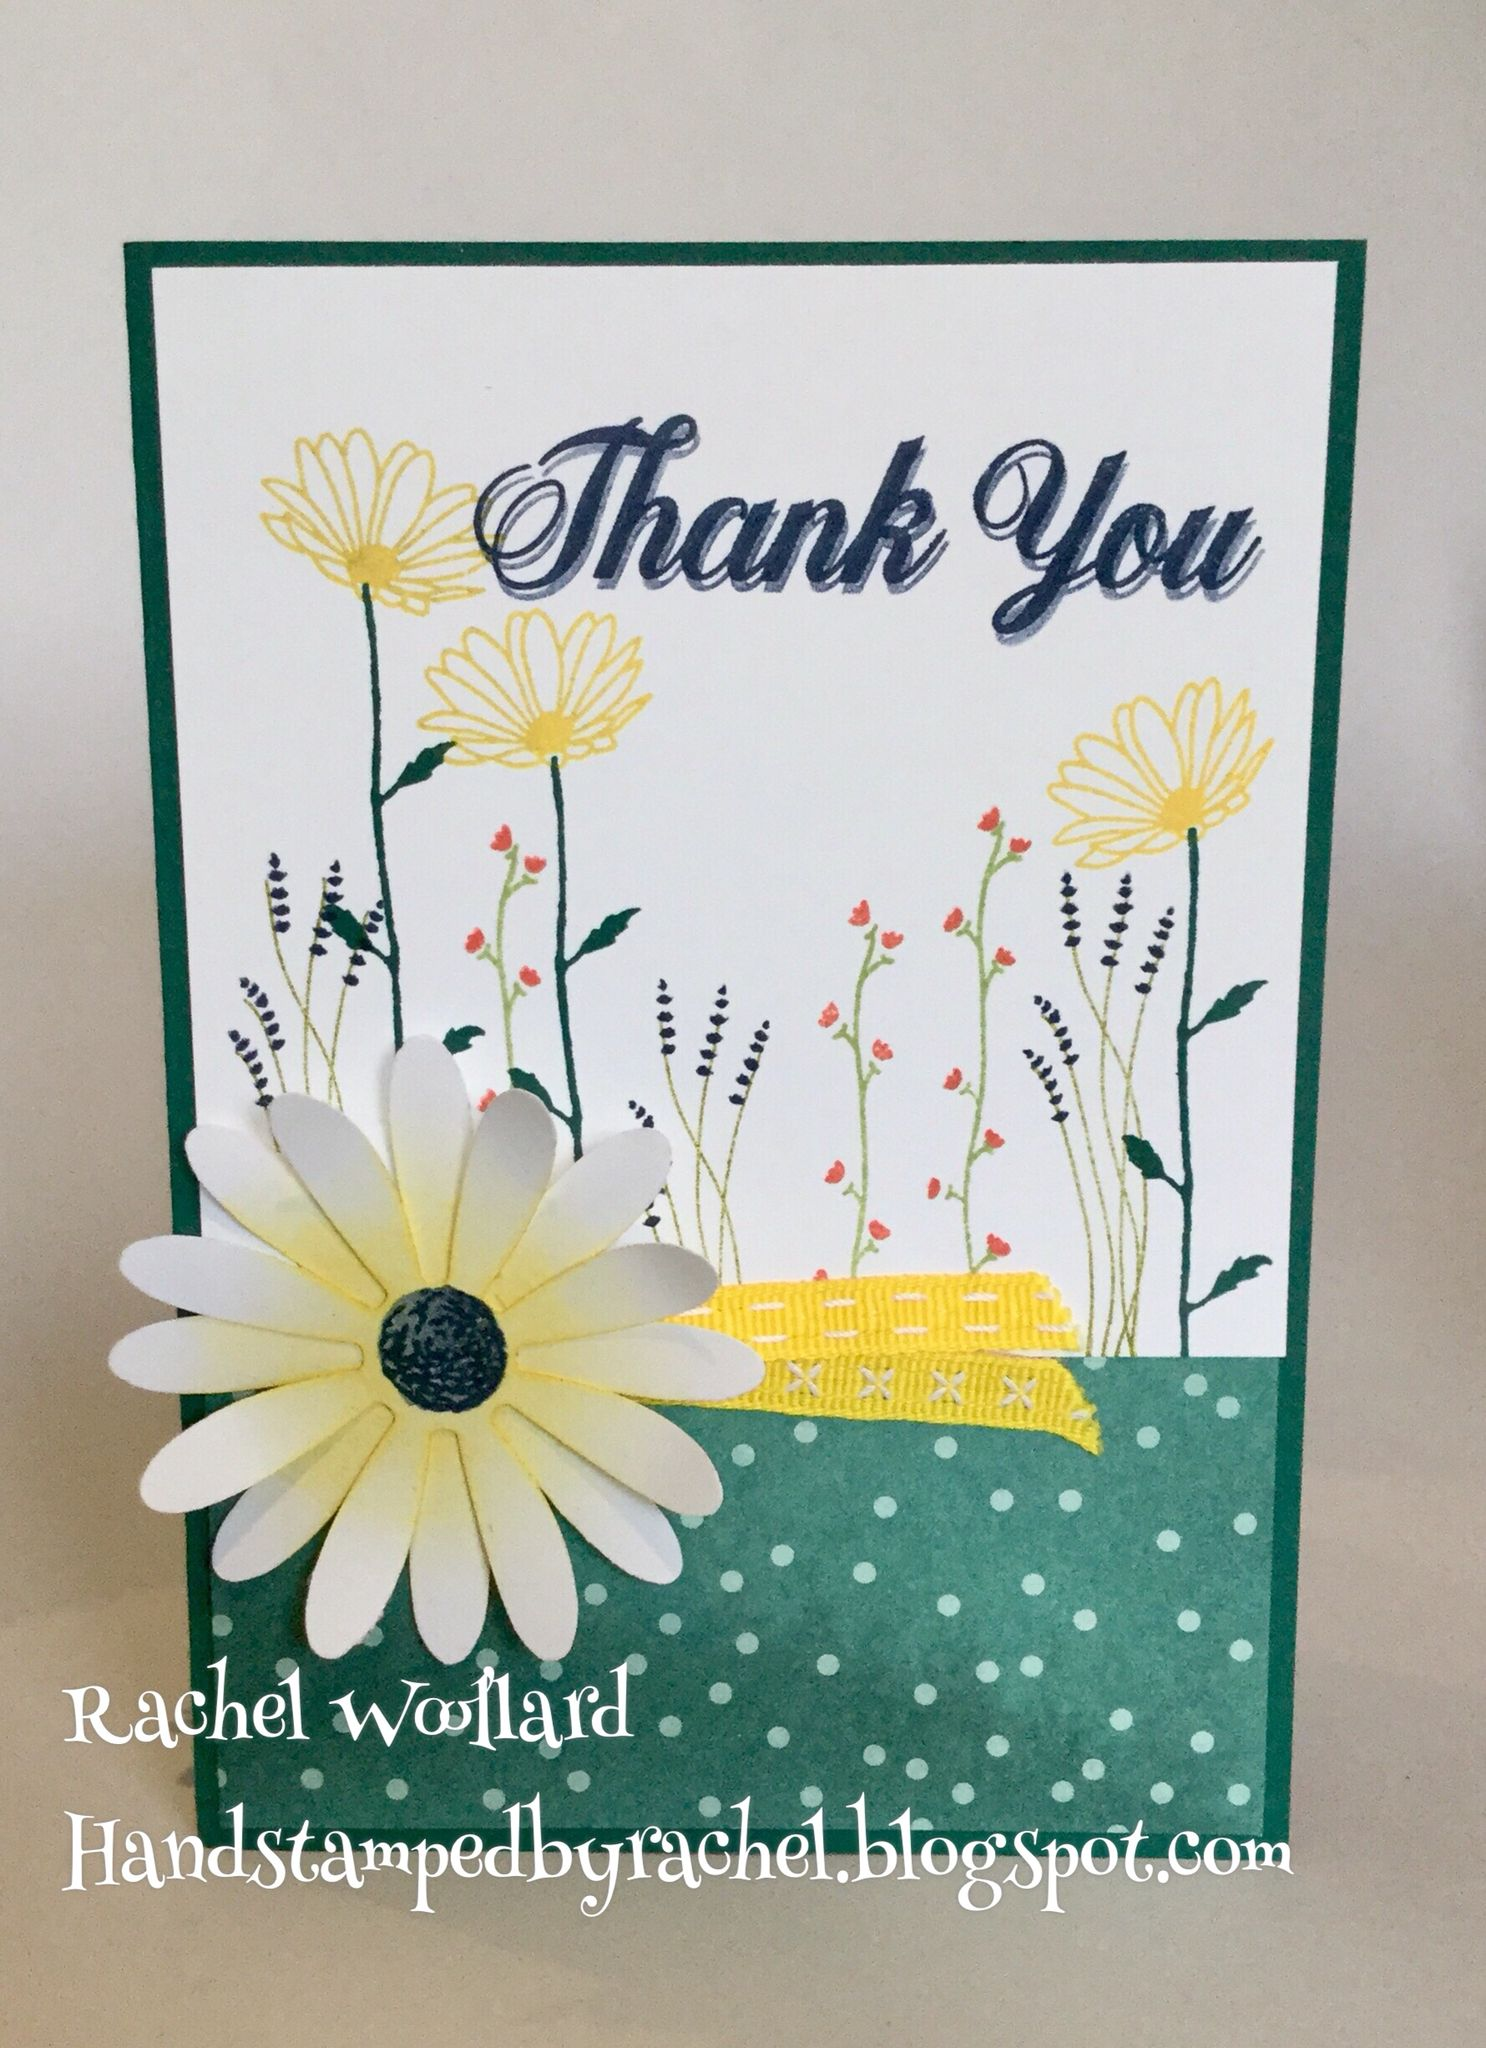 Delightful daisy stamp set and punch stampin up 2017 2018 delightful daisy stamp set and punch stampin up 2017 2018 kristyandbryce Images